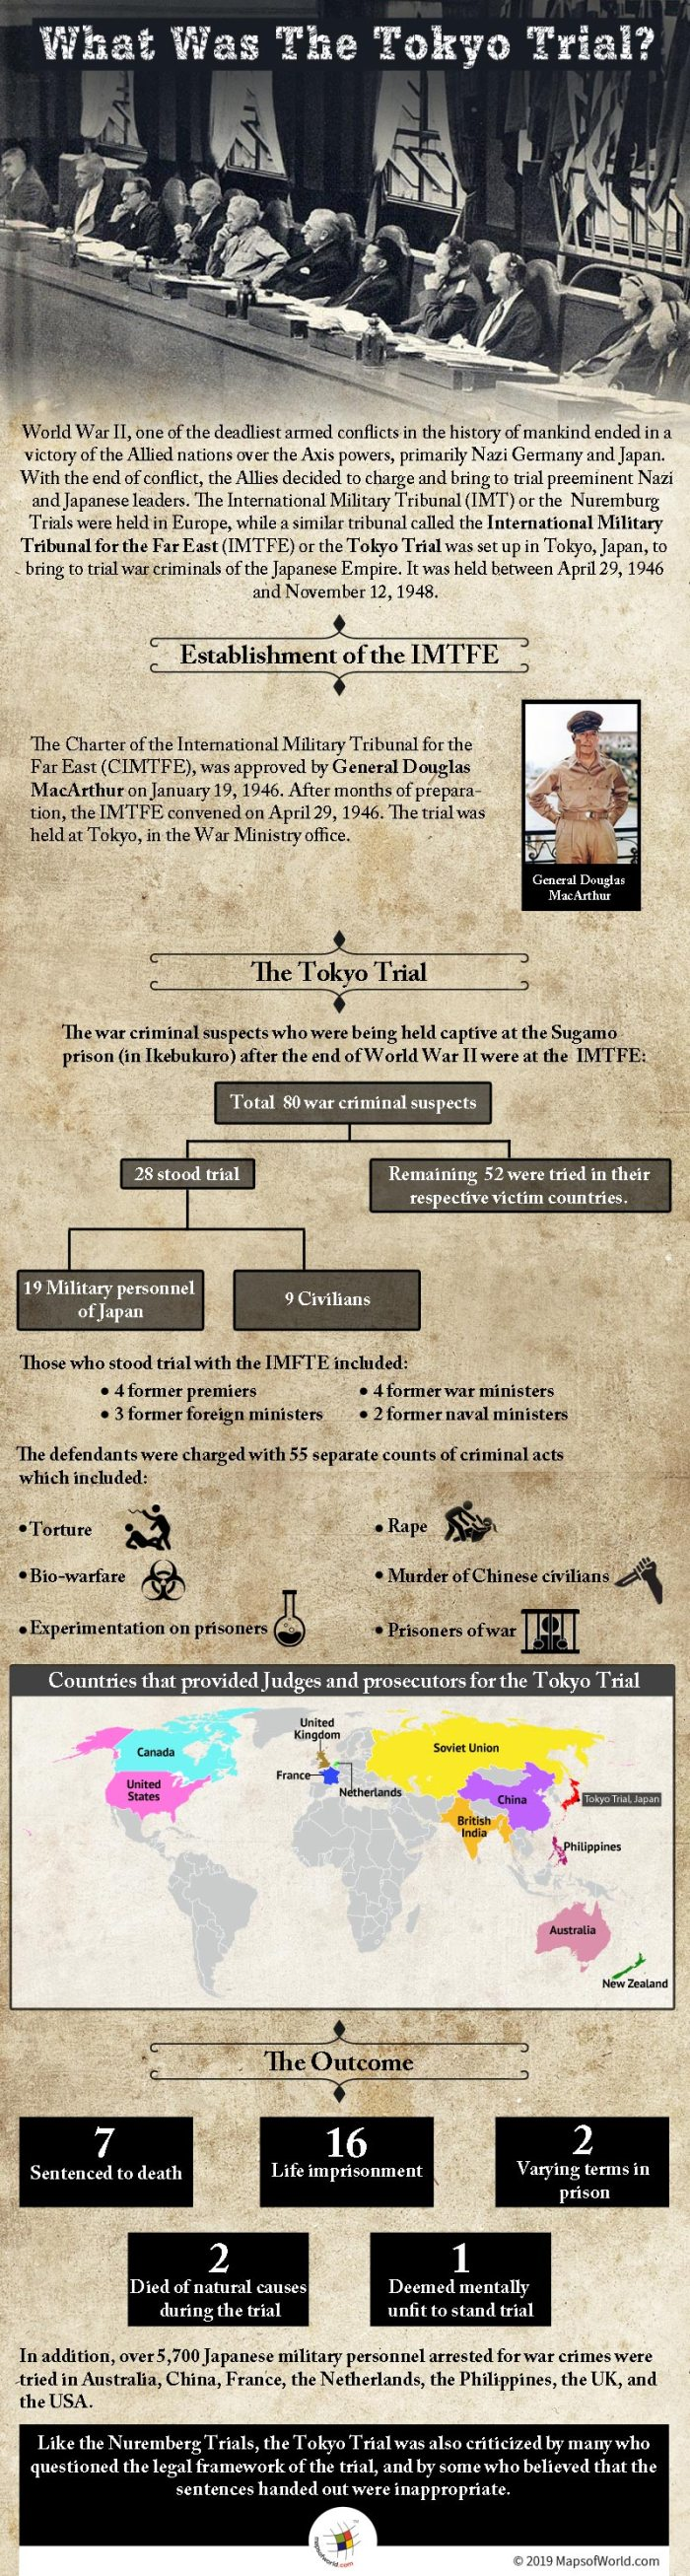 Infographic Giving Details on The Tokyo Trial